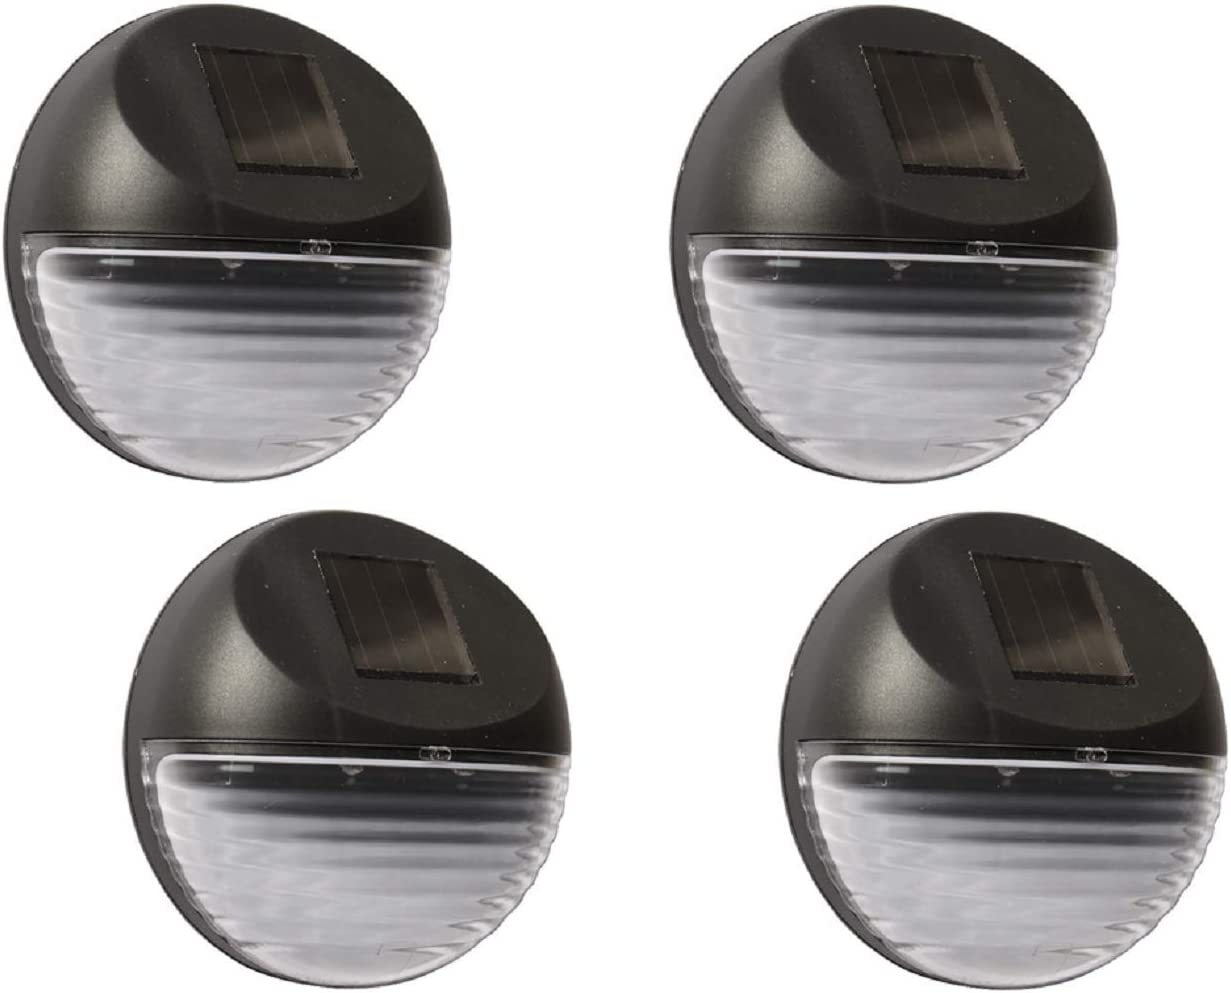 Solar Powered Wall Lights 4 Pack Solar Power Fence Lights Outdoor Solar Stair Lights 2 LED Step Light Wall Mount Garden Path Step Lights for Garden Fence Walkways Stairways Path Pathway